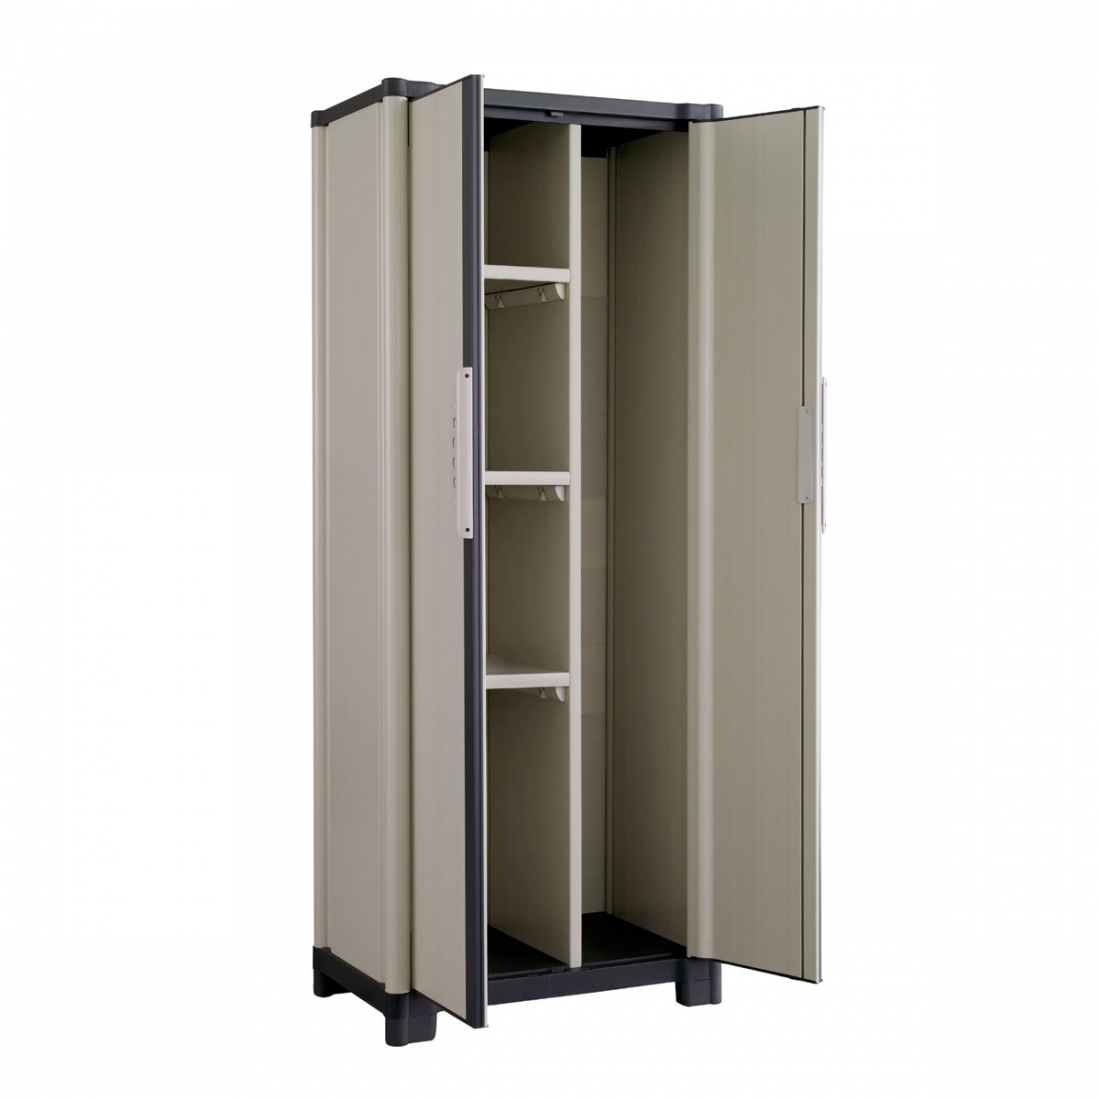 Armoire combi design GROSFILLEX Workline